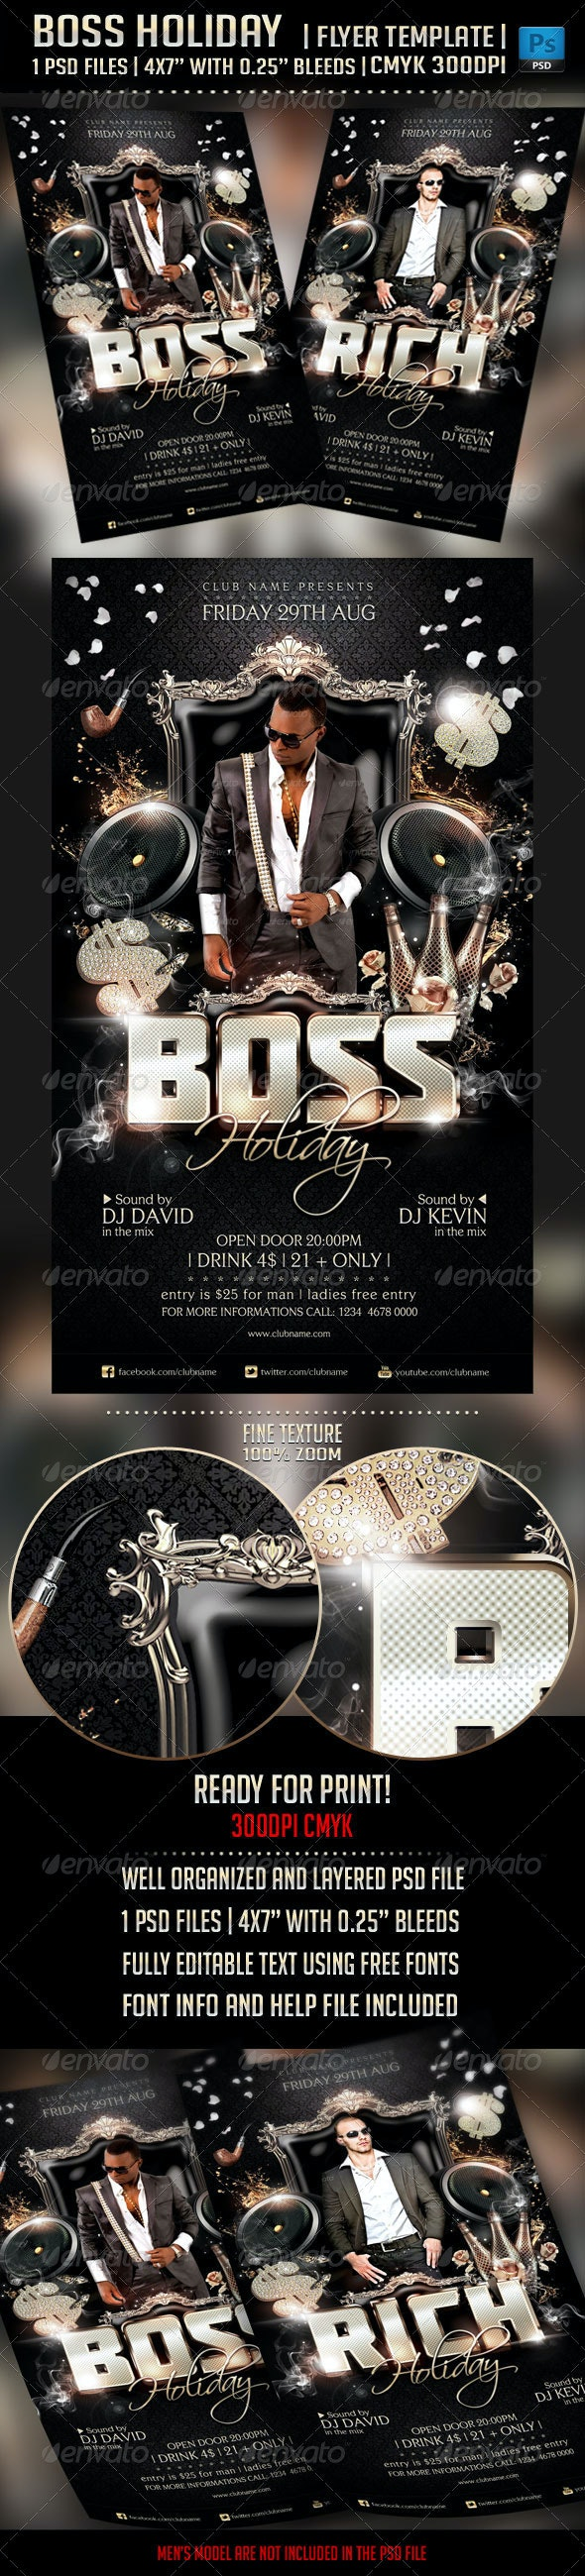 Boss Holiday Flyer Template - Clubs & Parties Events